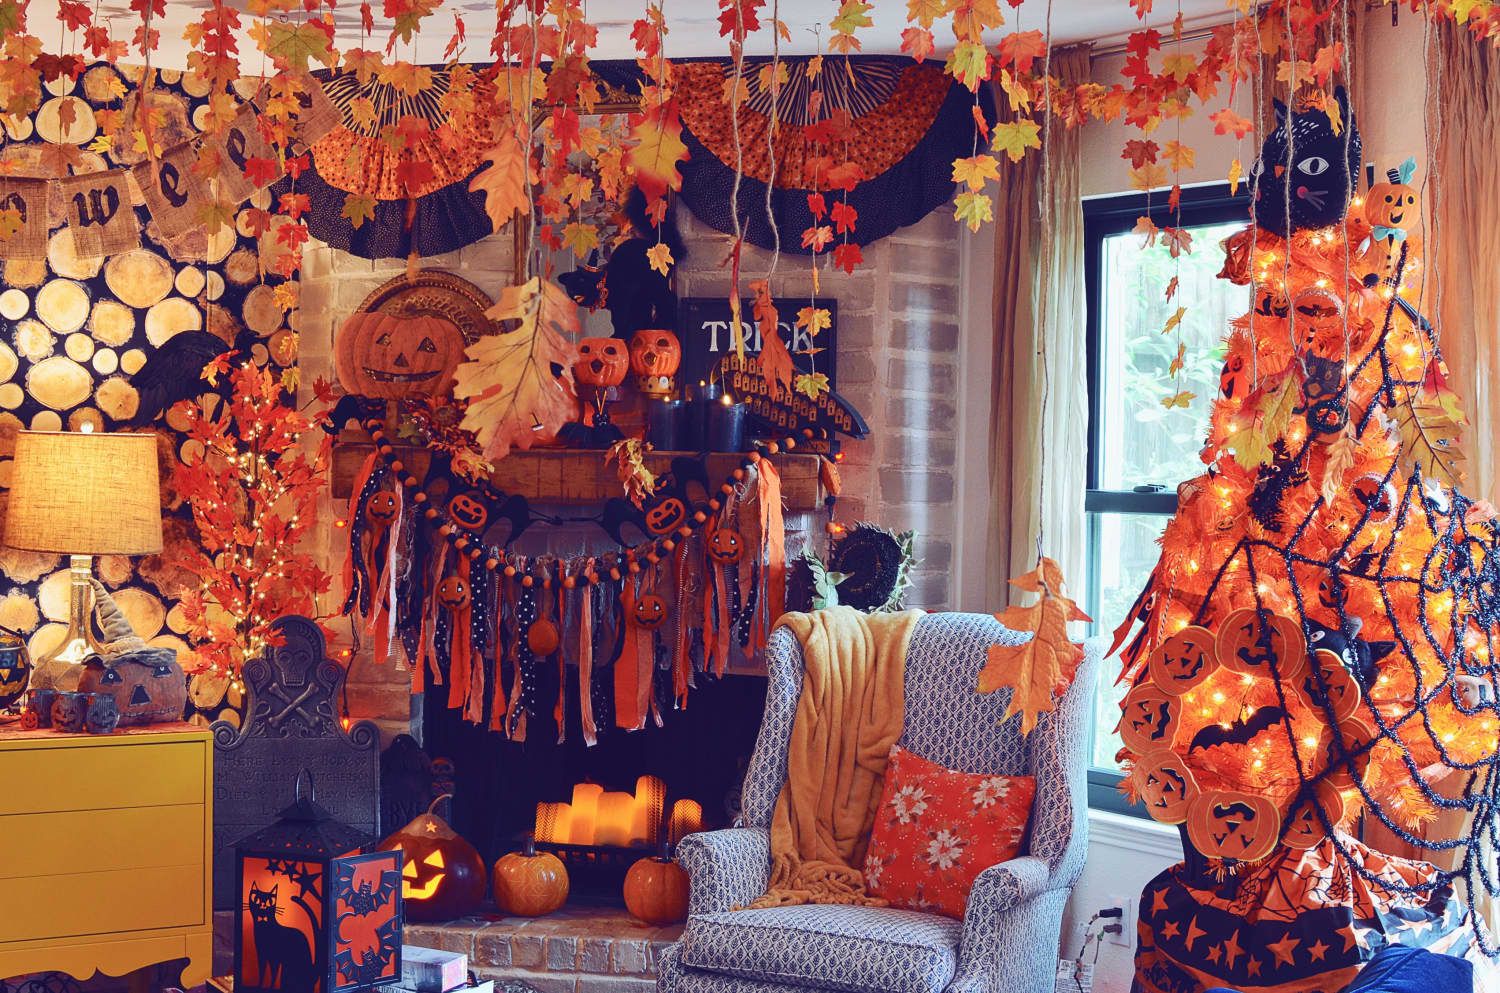 This Halloween-Ready Houston Home Has an Incredible DIY Headless Horseman Mural in the Dining Room You've Got to See